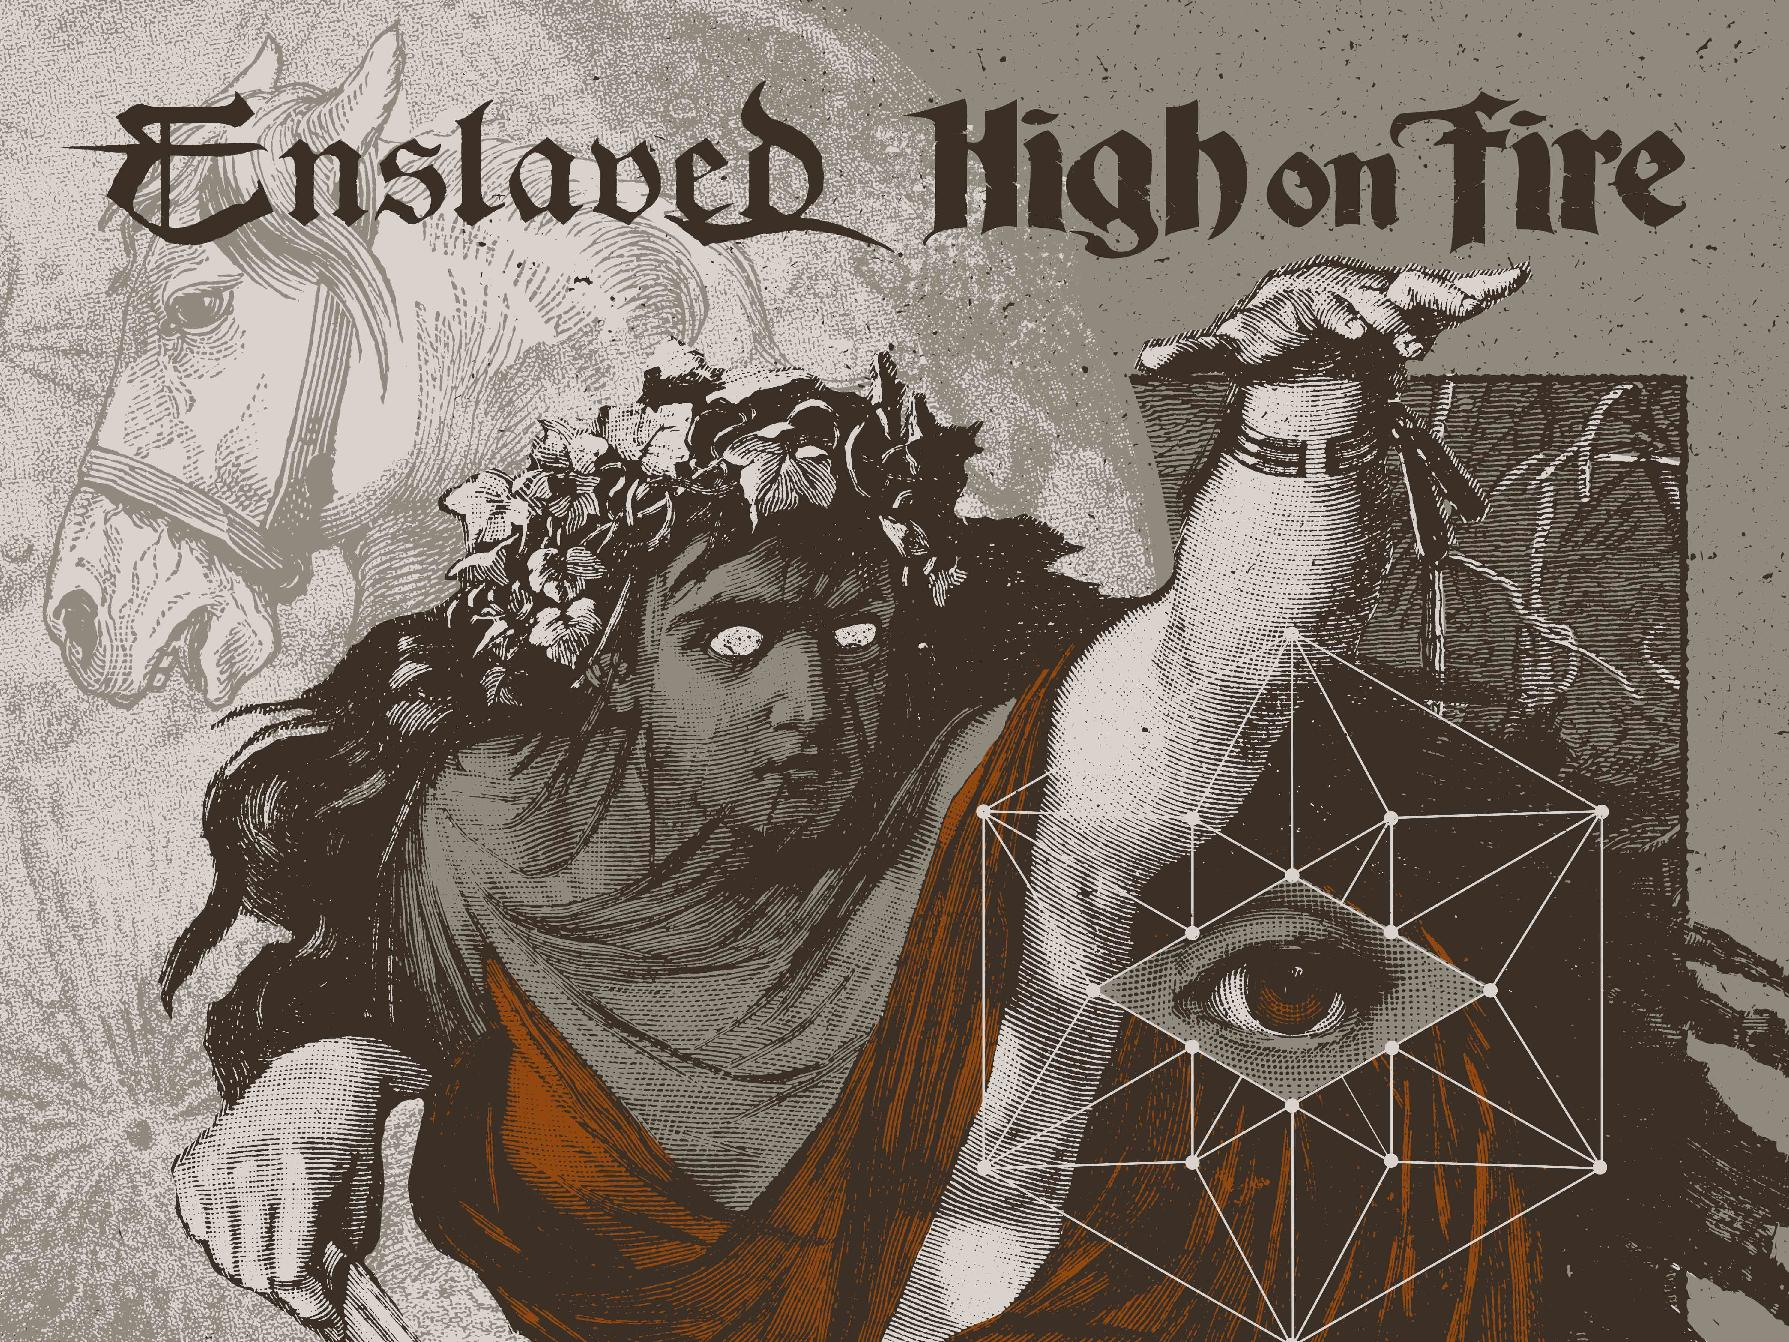 Enslaved & High on Fire